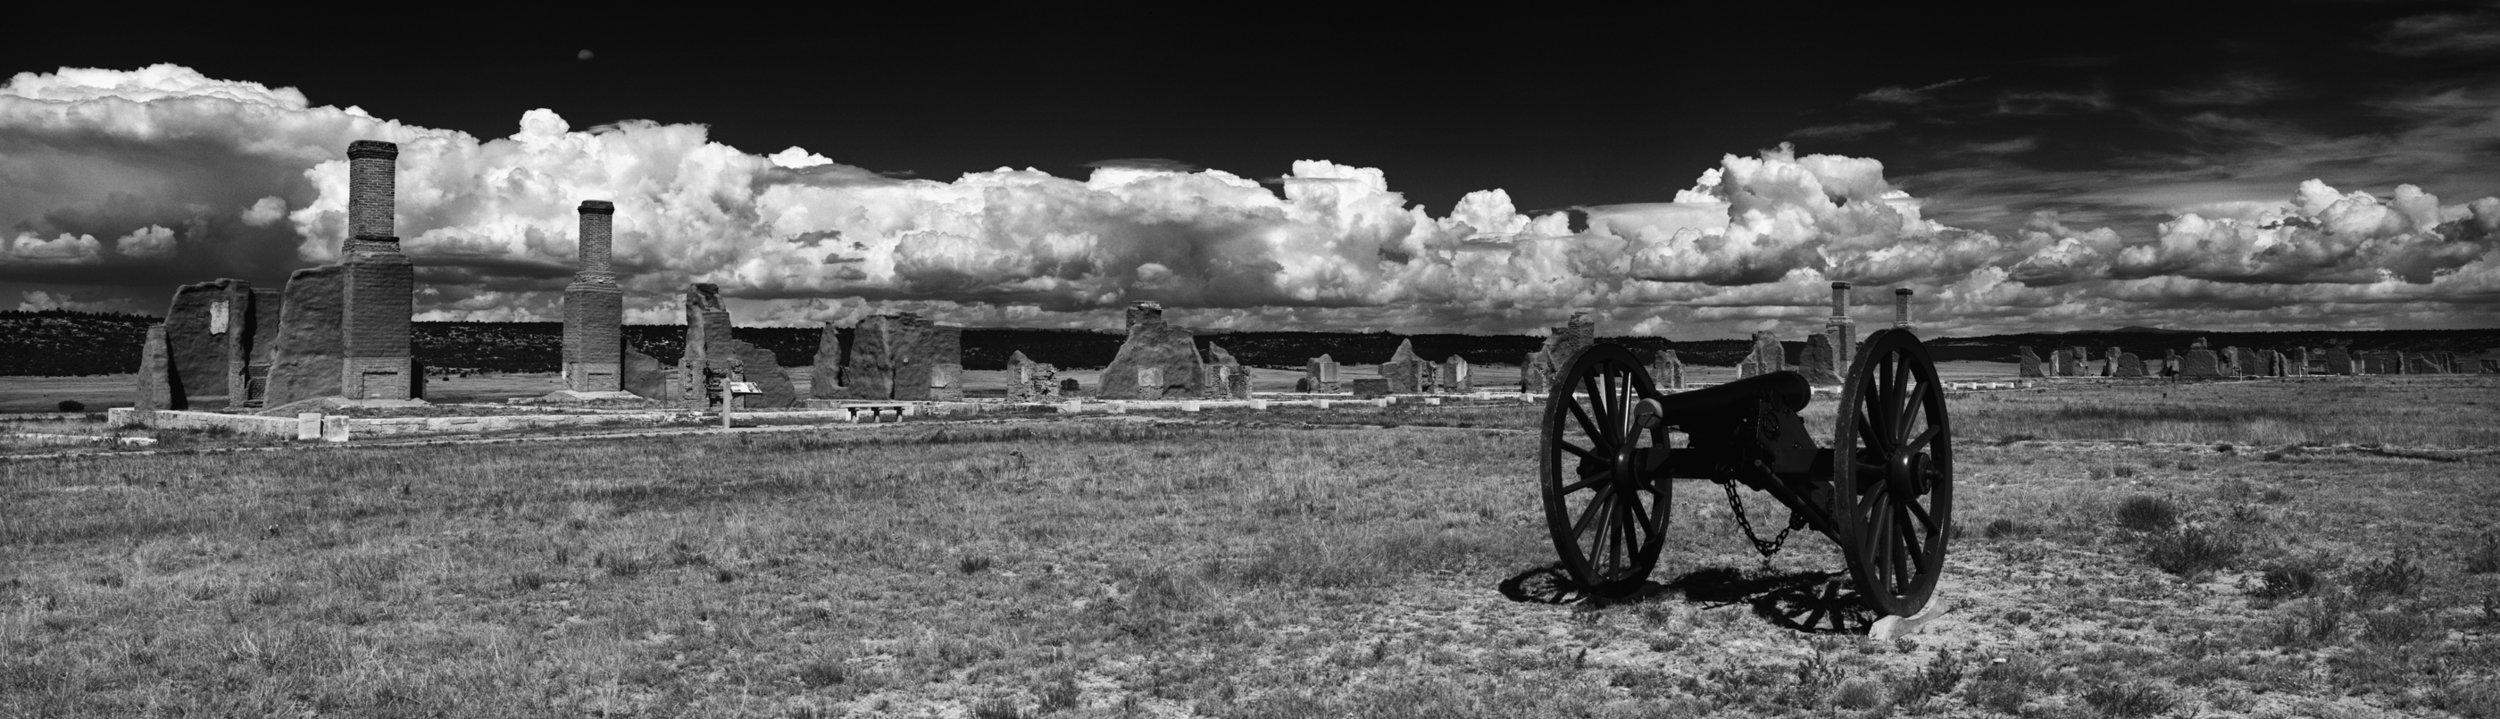 Cannon/ Officers Quarters-  Fort Union National Monument, New Mexico